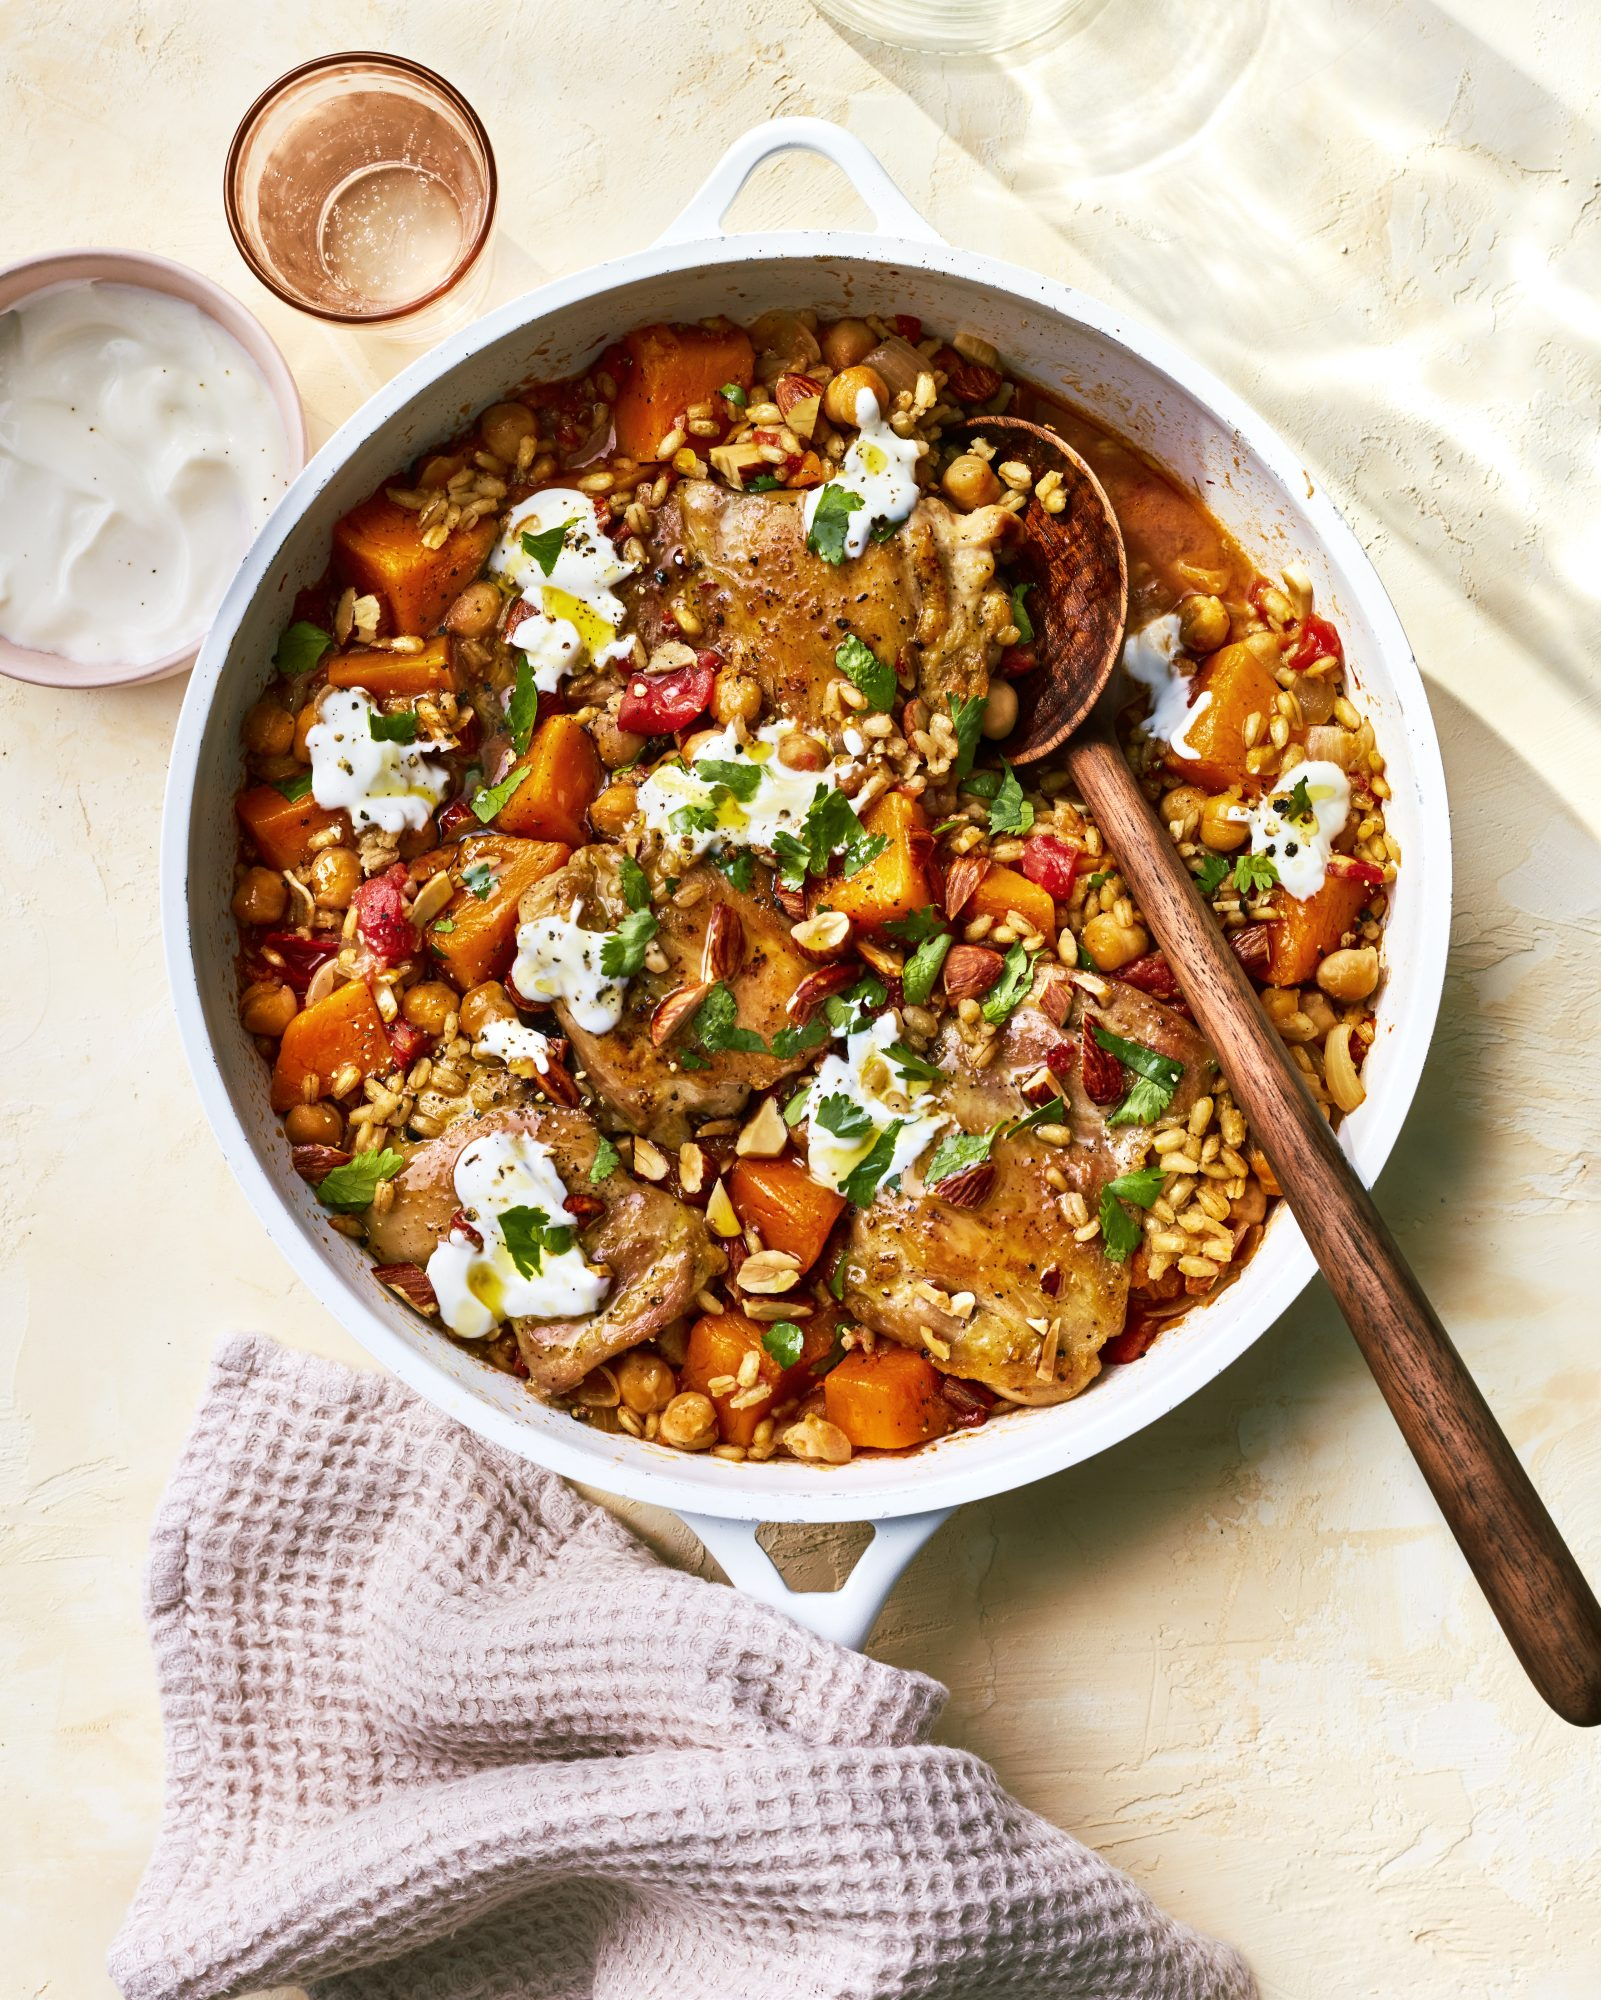 CHICKEN, BUTTERNUT SQUASH, AND BARLEY SKILLET DINNER MARCH 2019 health magazine woman diet